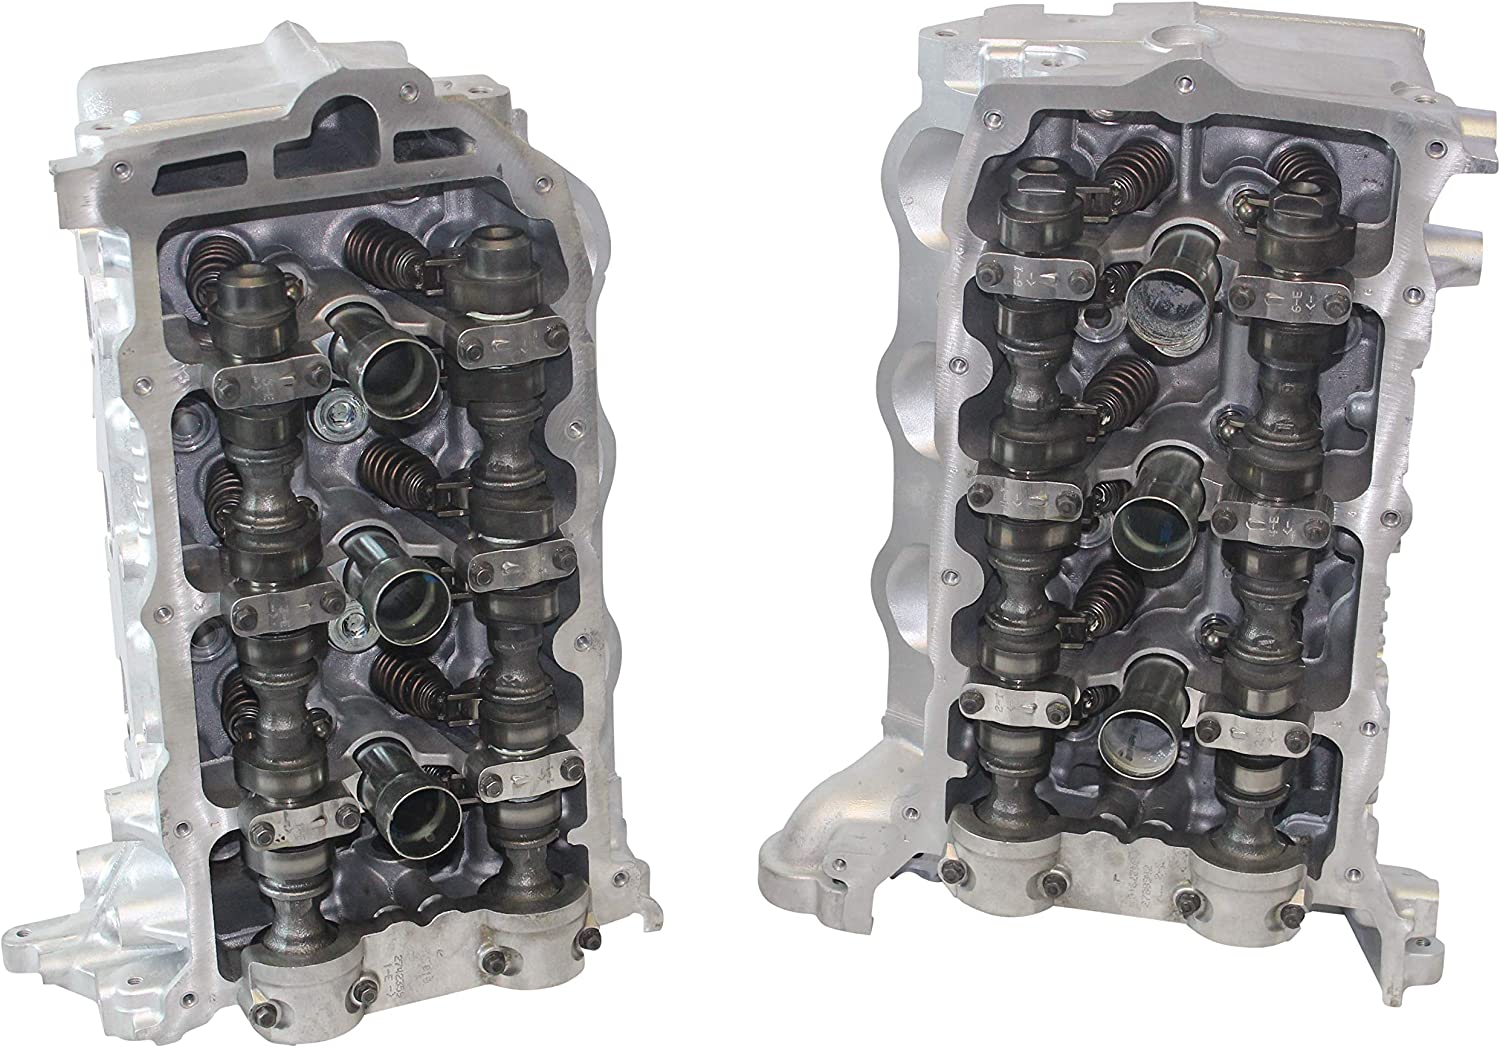 Remanufactured 3.6 DOHC V6 Cast# 597 Cylinder 596 Super-cheap CTS Excellence LY7 Heads